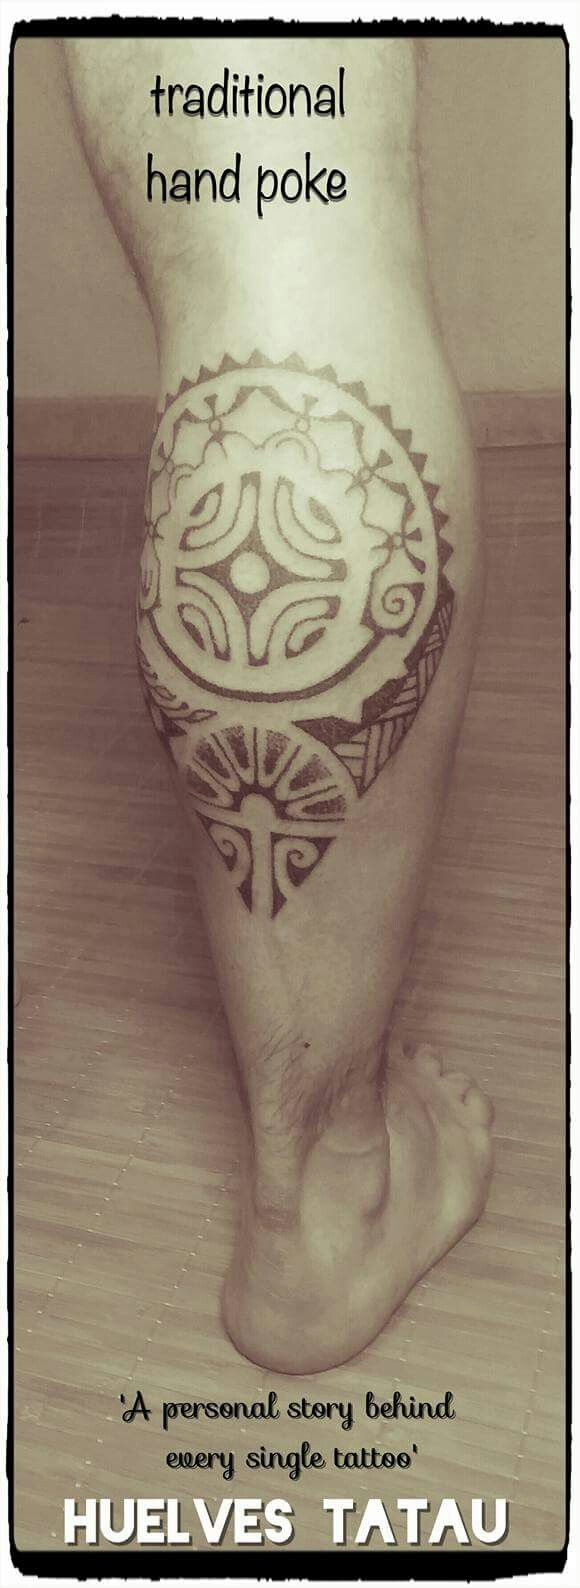 Polynesian tattoo design by Huelves Tatau Madrid.Spain #polynesian #tattoo #tatuaje #tatouage   #polinesio #art #arte #spain #de #huelvestatau #huelves #tatau #ink #tahiti #islas #marquesas #islands #samoa #maori #hawaii